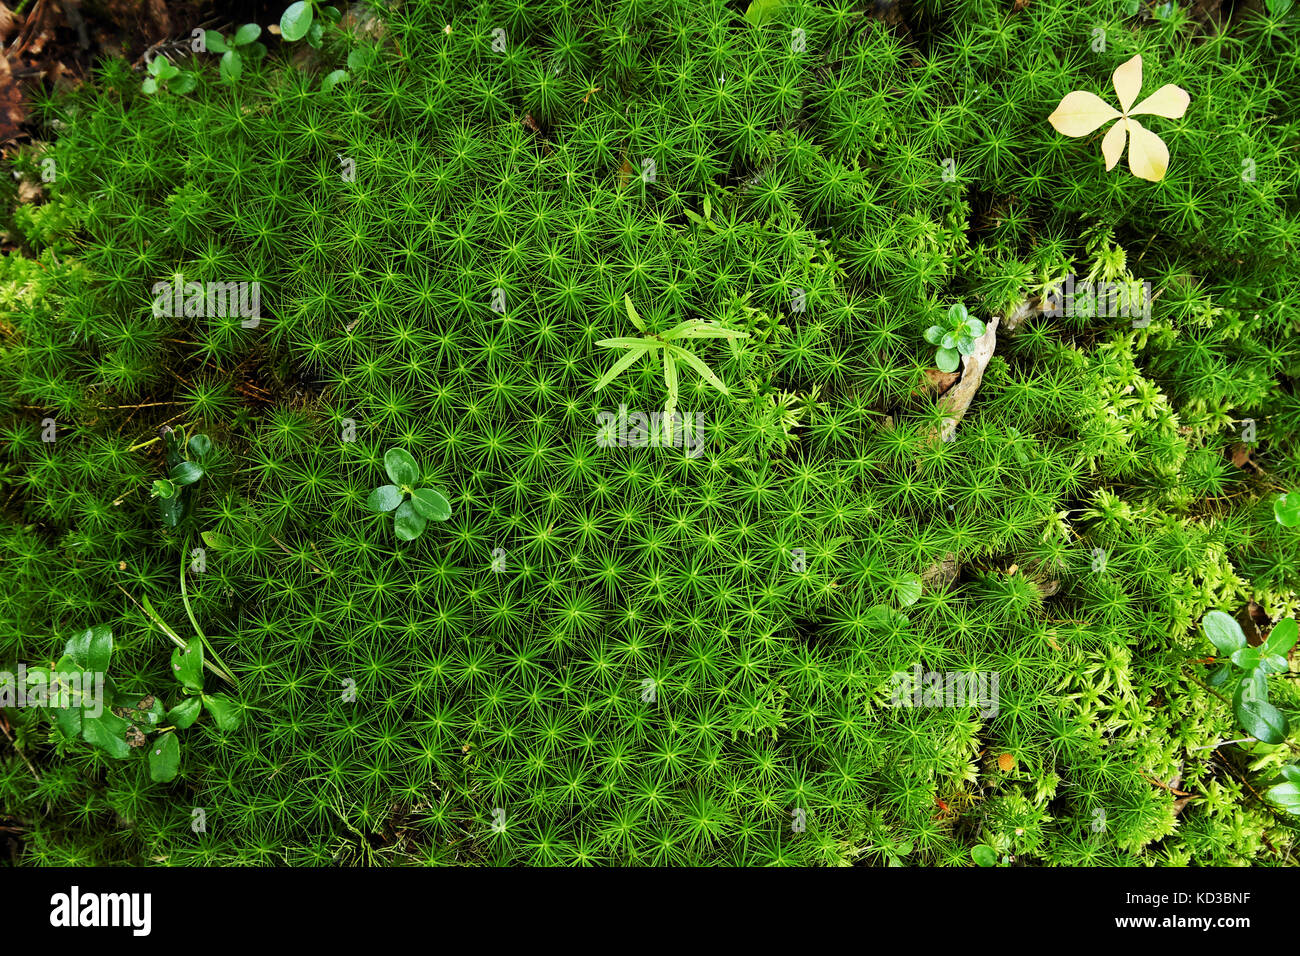 small plants among massive green moss in the form of asterisks - Stock Image